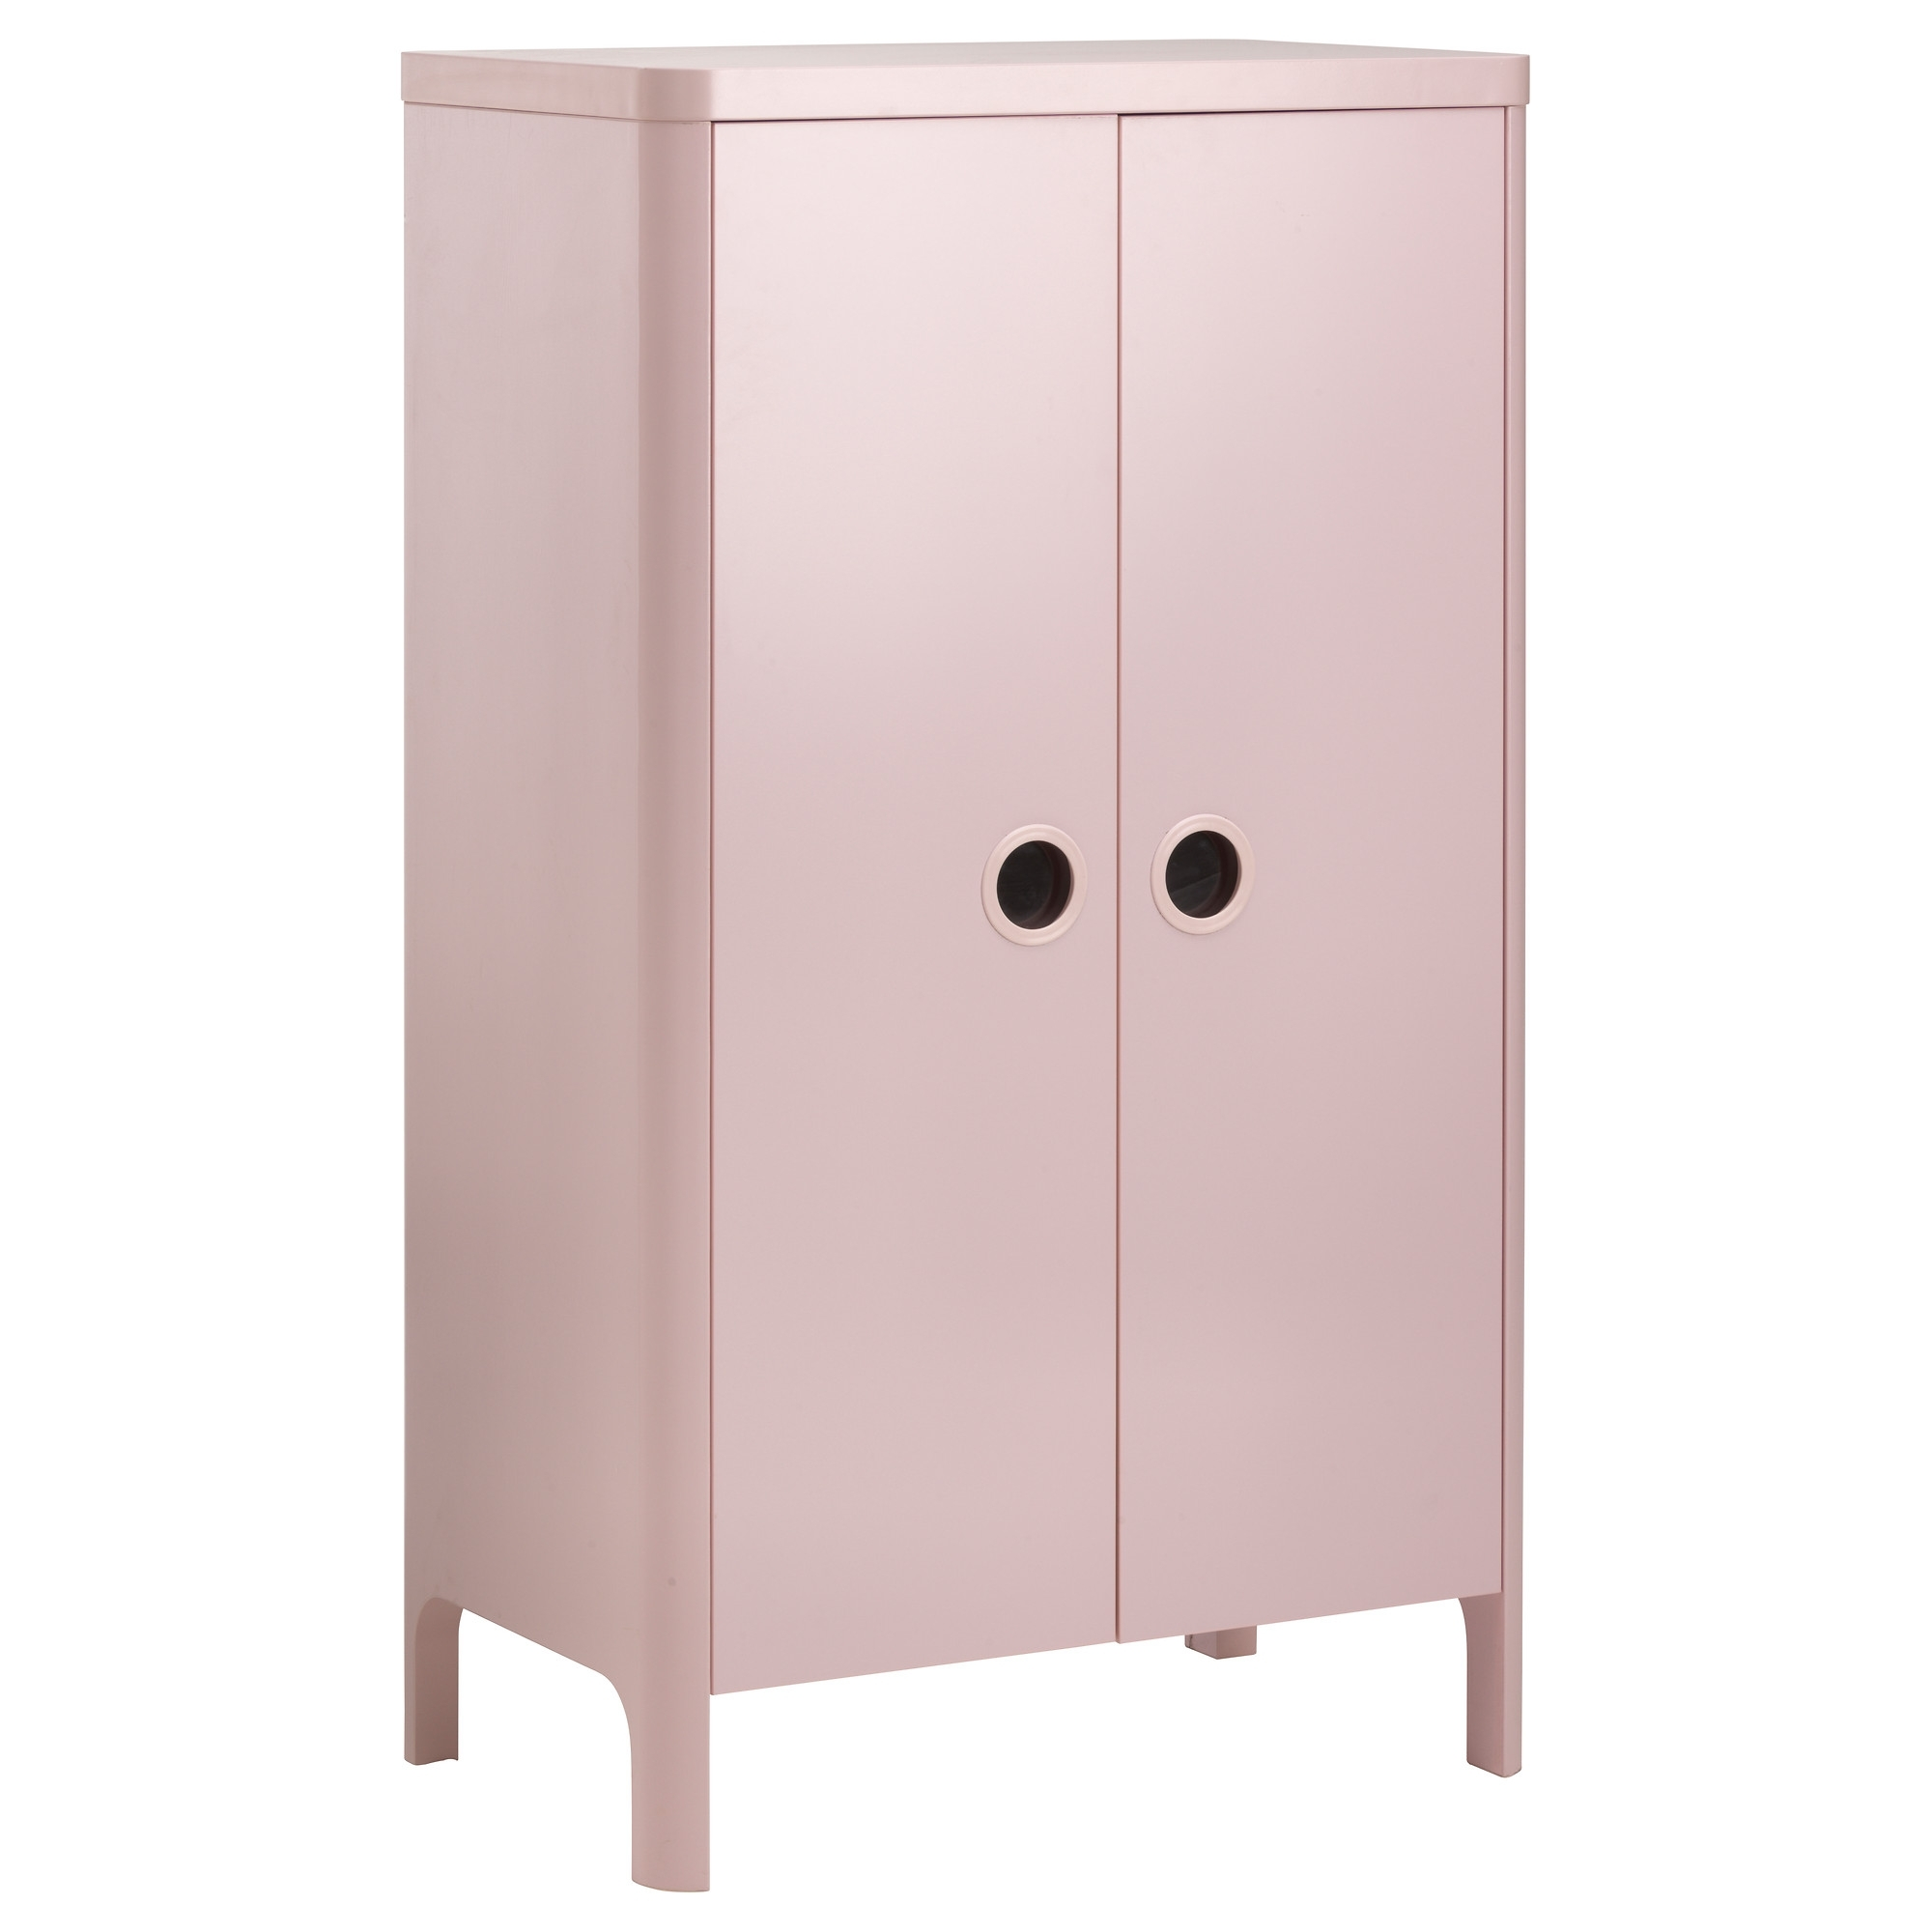 Children's Wardrobes – Nursery Wardrobes – Ikea With Recent Childrens Tallboy Wardrobes (View 8 of 15)